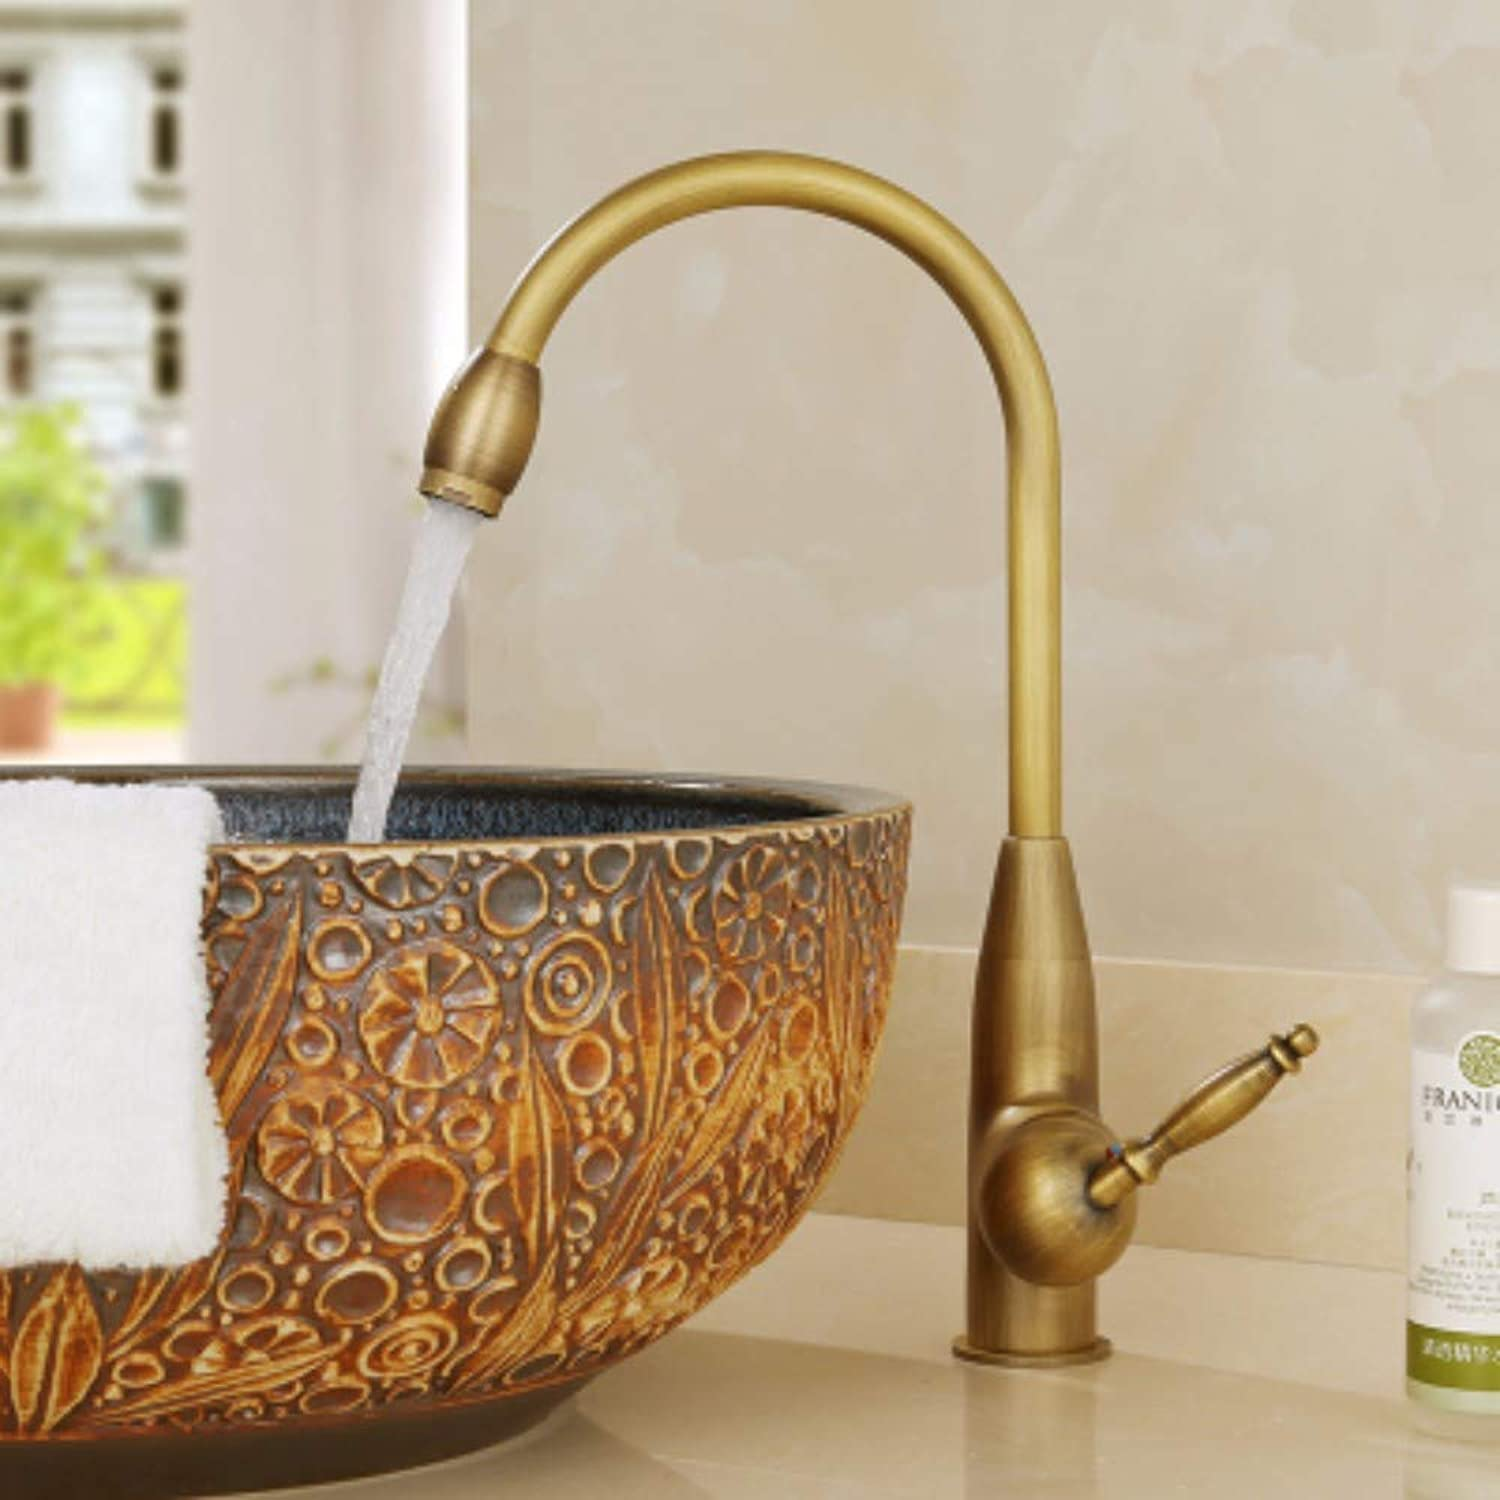 XHSSF-Bathroom taps European-Style Antique-imitating All-Copper Retro-Cold and hot taps can be redated,A